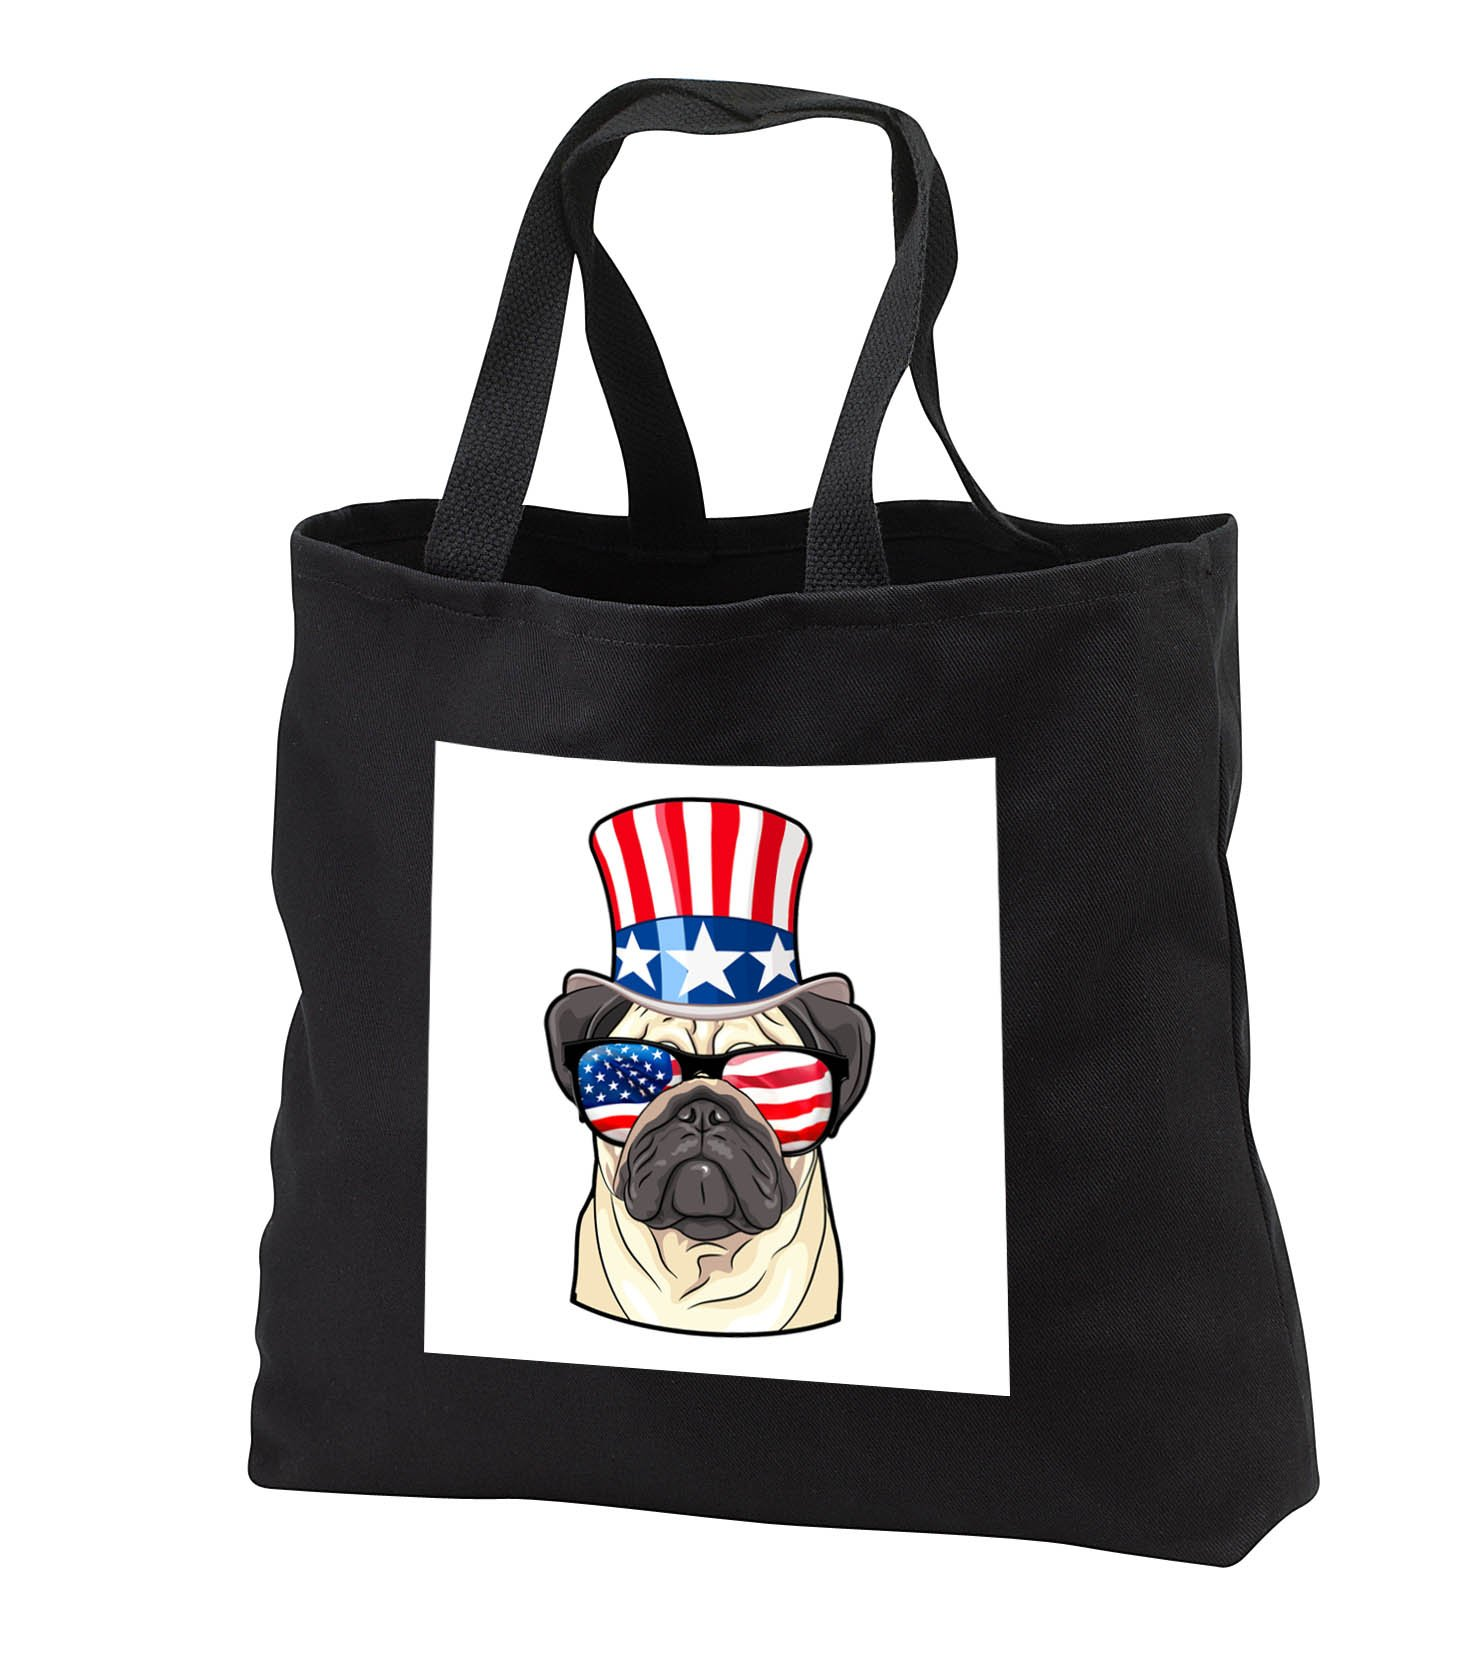 Patriotic American Dogs - Pug Dog With American Flag Sunglasses and Top hat - Tote Bags - Black Tote Bag 14w x 14h x 3d (tb_282706_1)